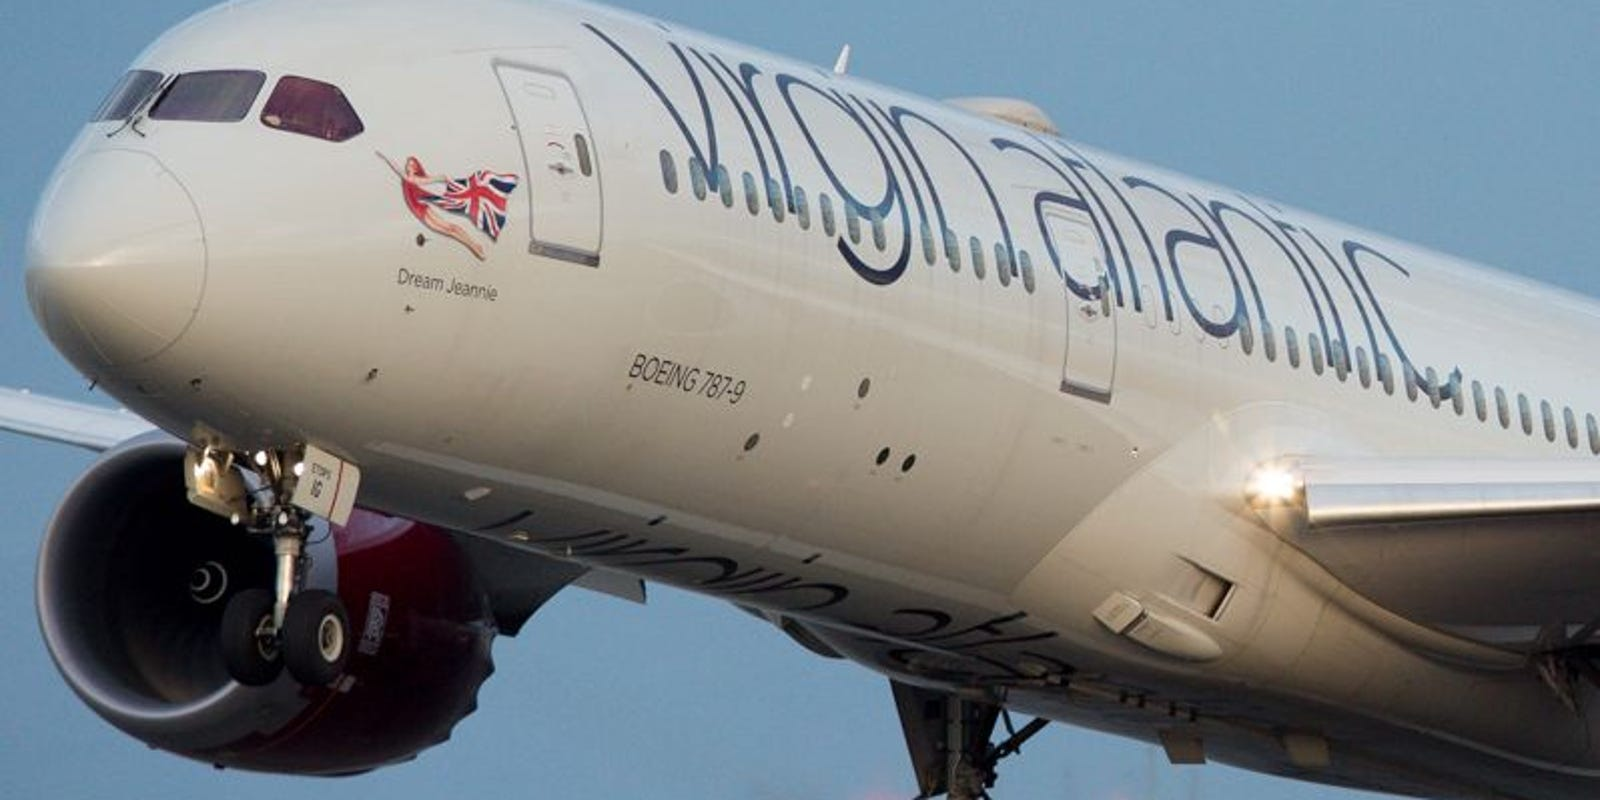 Virgin Atlantic airline files for U.S. bankruptcy protection